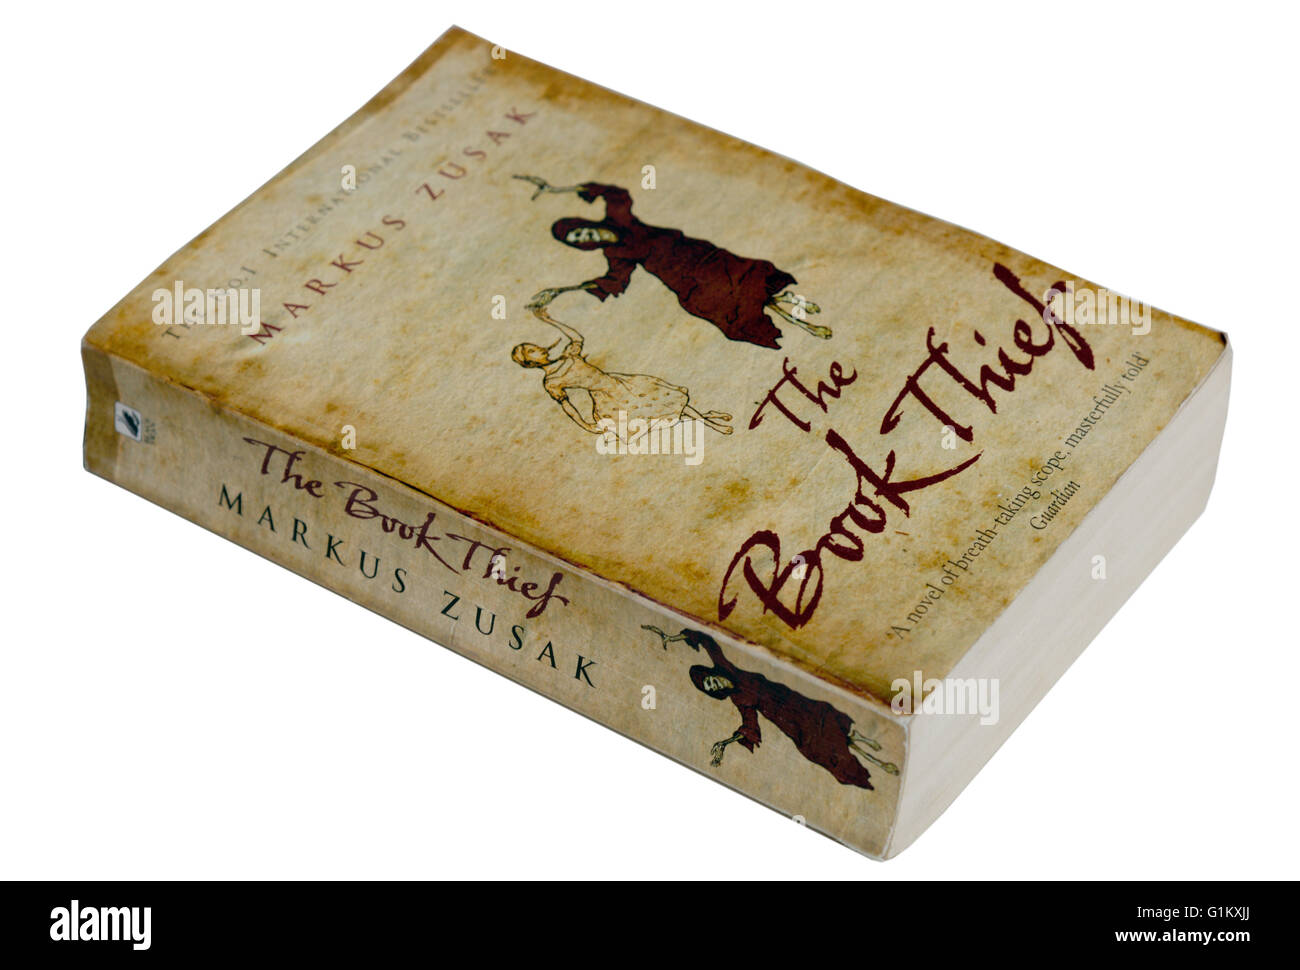 The Book Thief by Markus Zusak - Stock Image